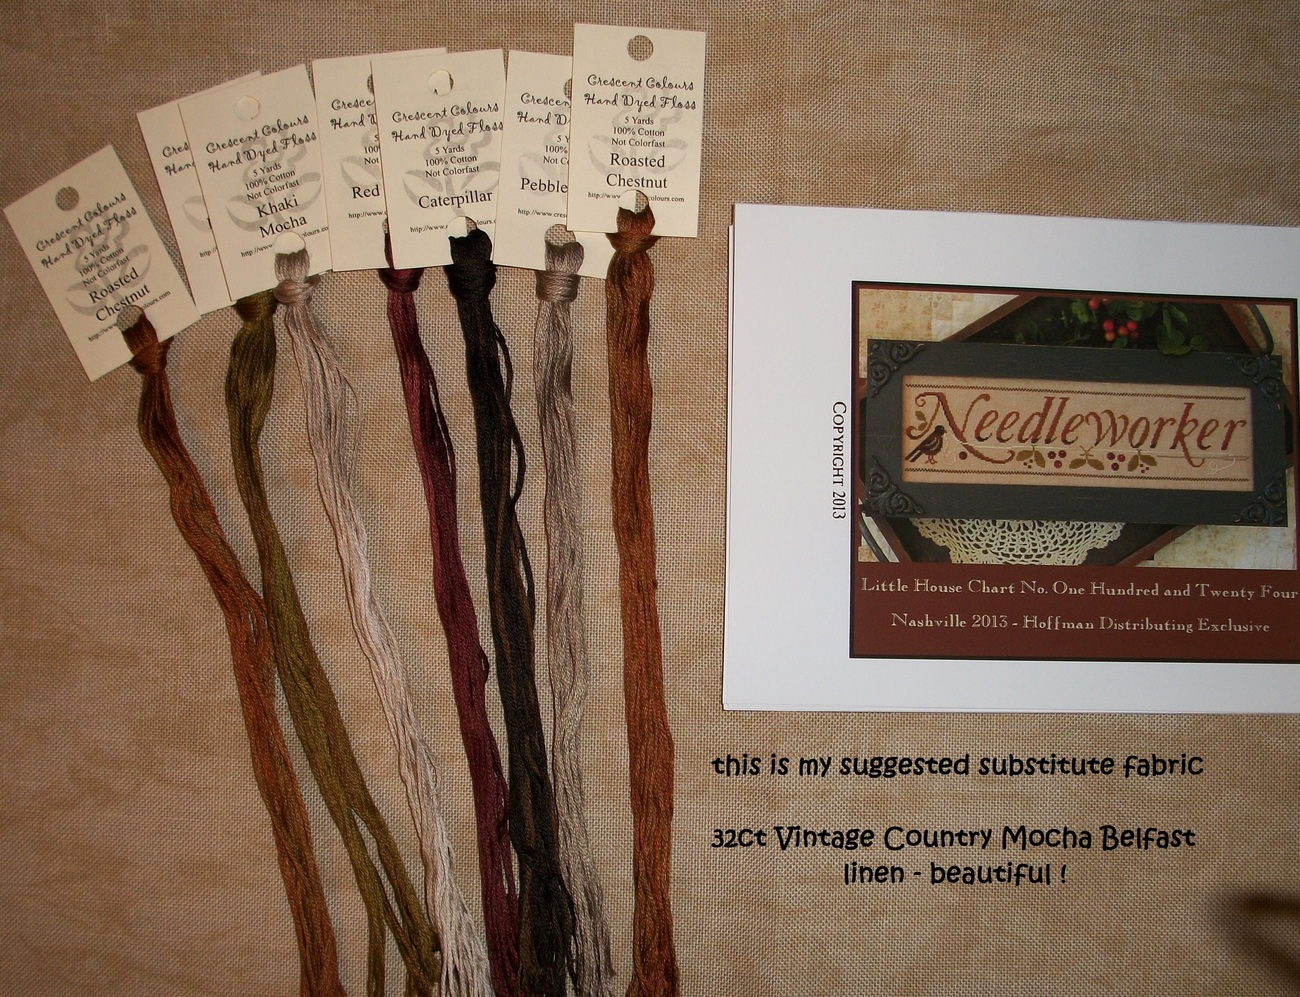 Needleworker fabric floss 32ct vintage country mocha linen 2